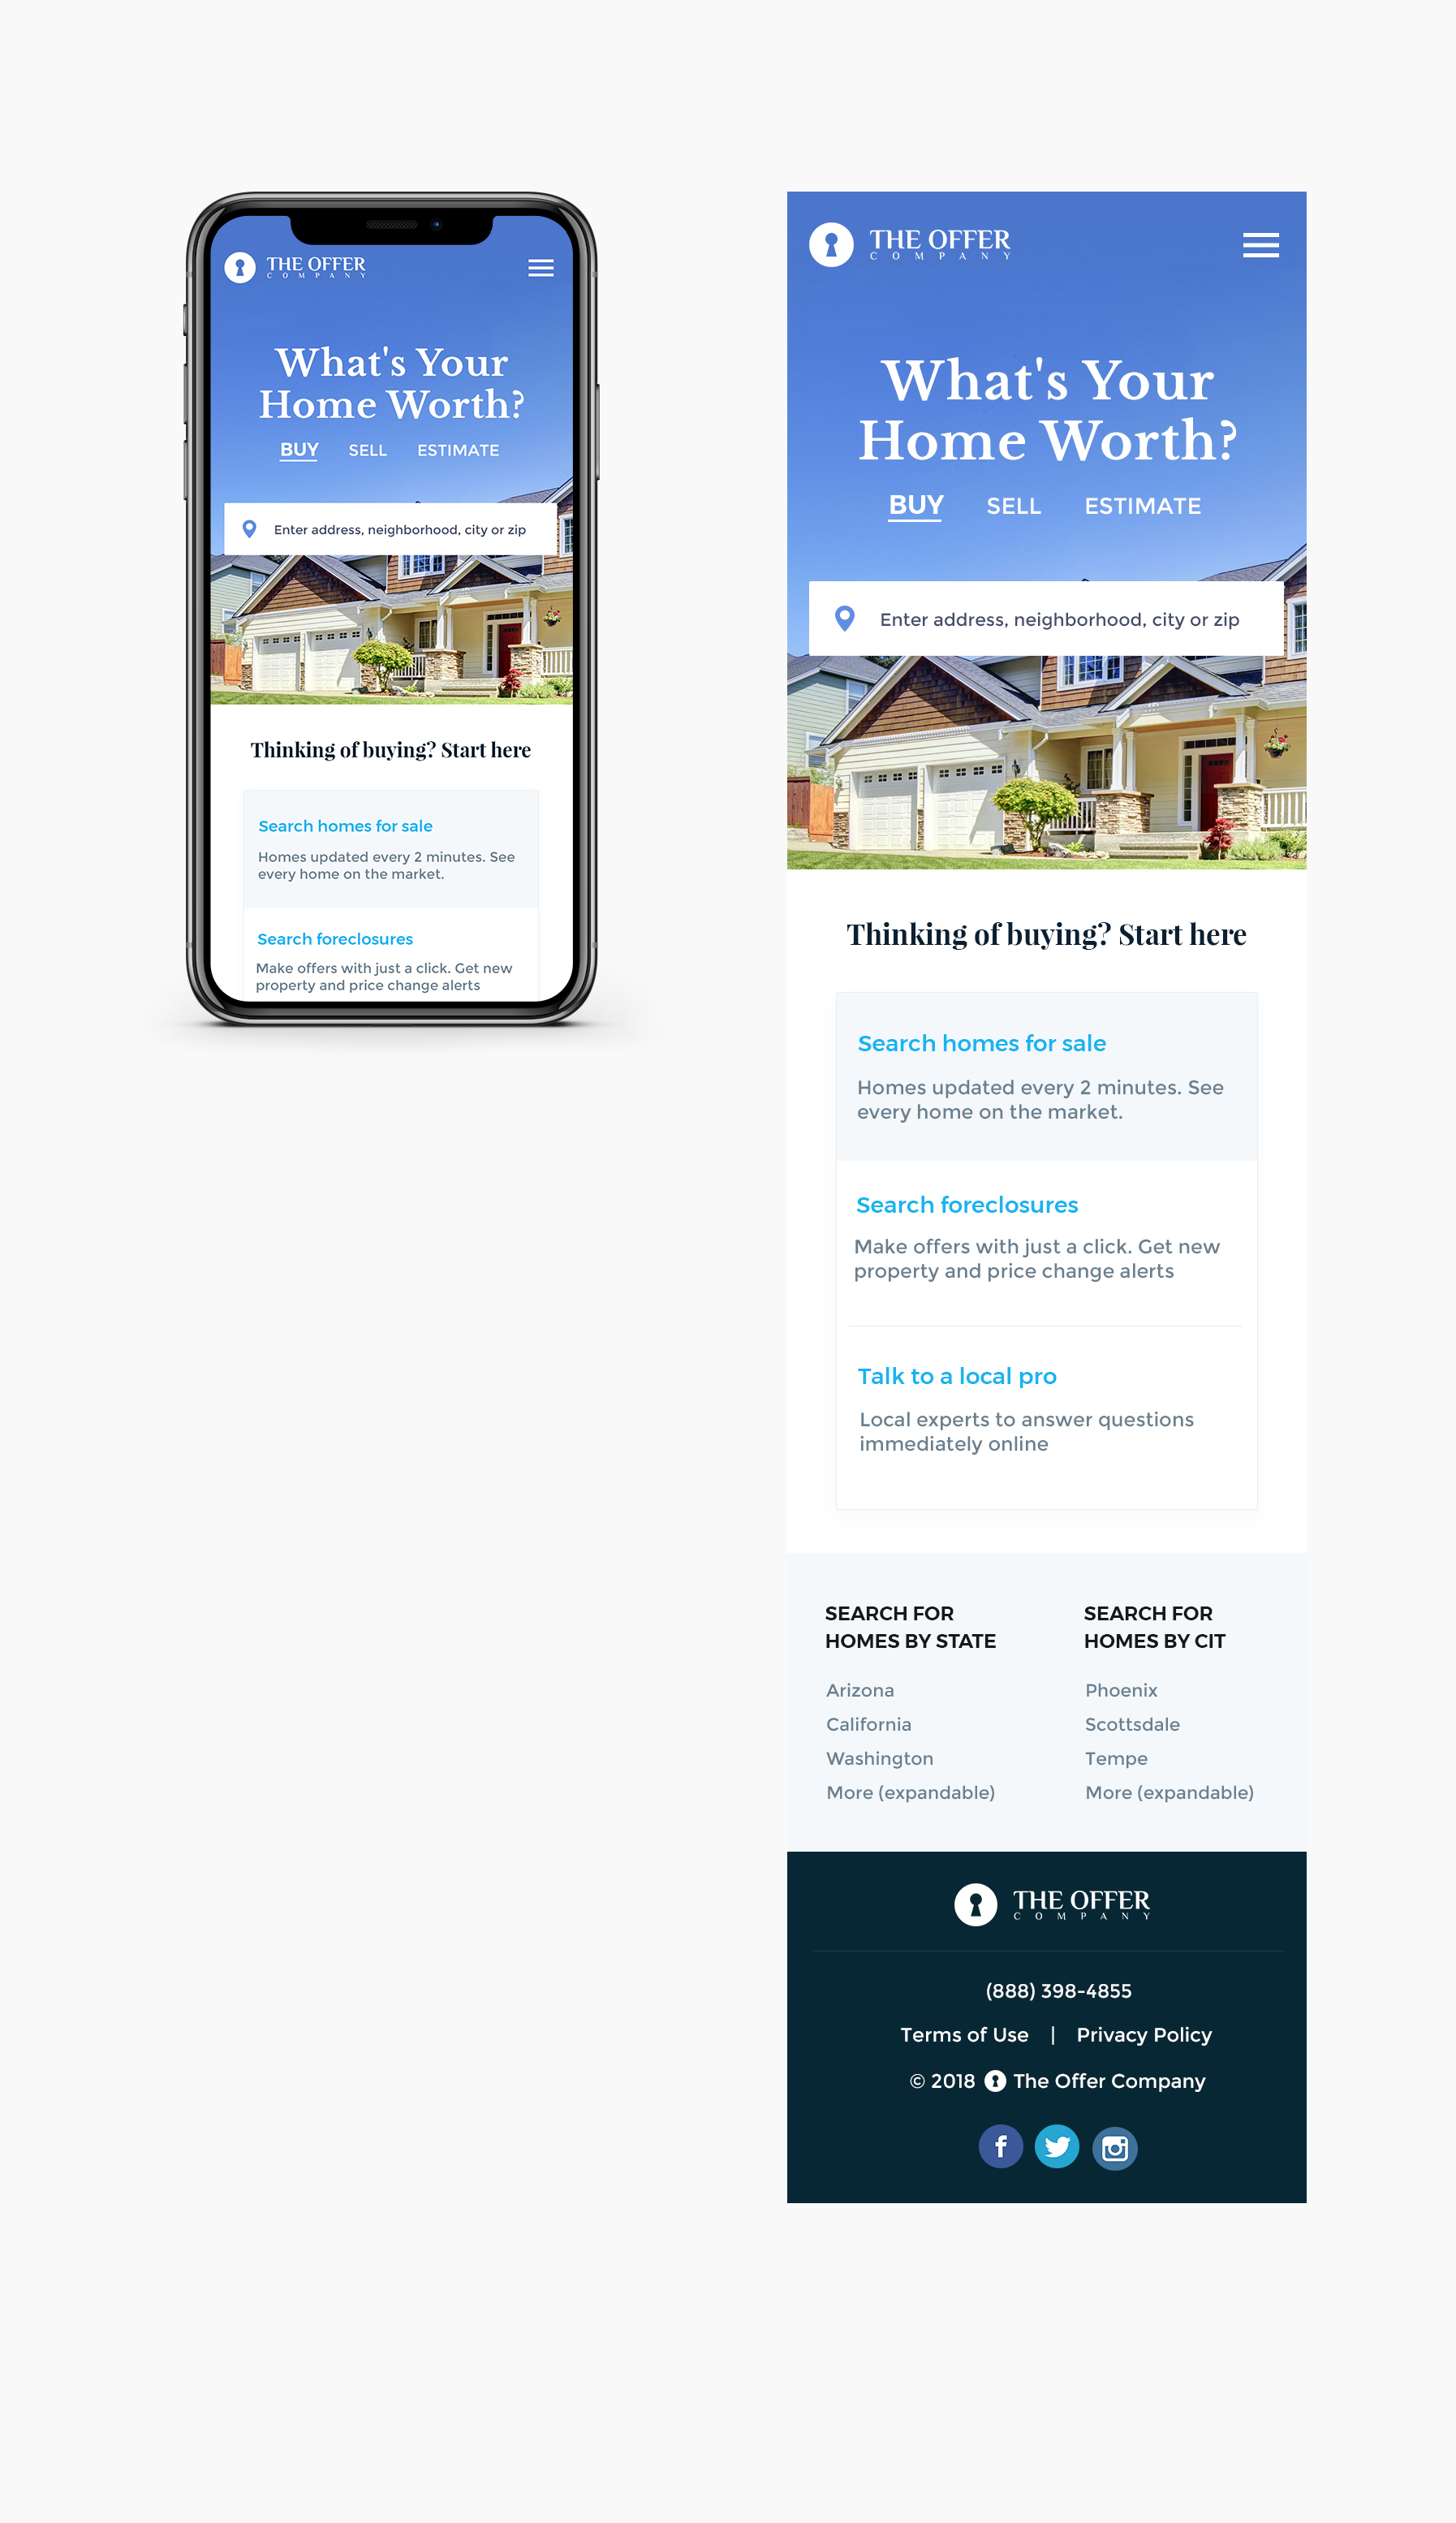 This Is A Property Selling Website Where One Can Buy Sell Properties Esolz Website Webpagedesign Fun Website Design Webpage Design Website Design